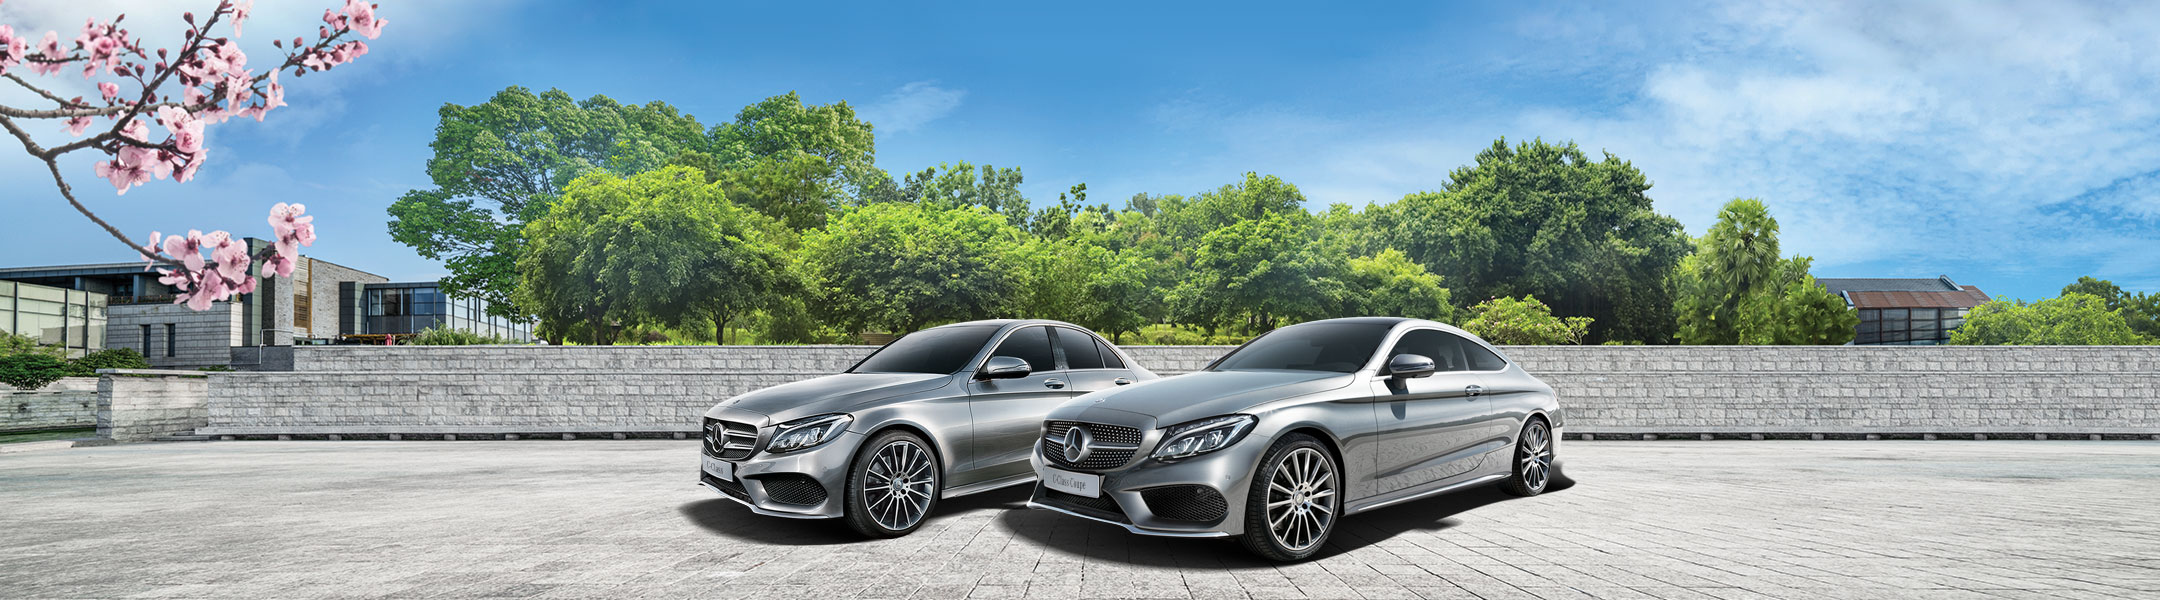 Special offers mercedes benz for Mercedes benz cpo special offers